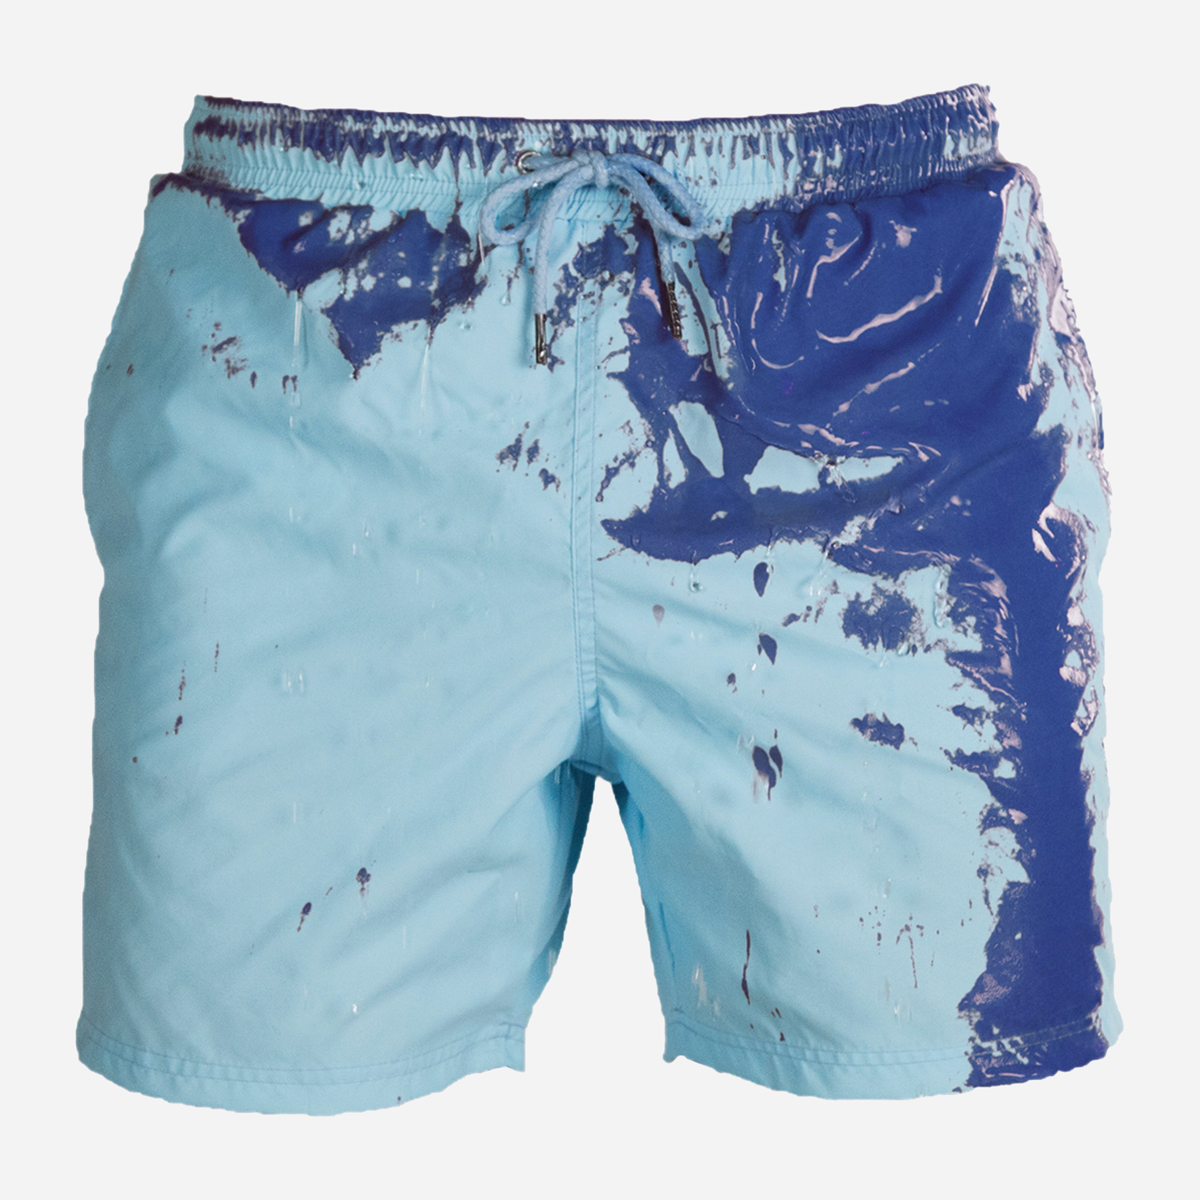 Color Changing Swimming Shorts - Blue